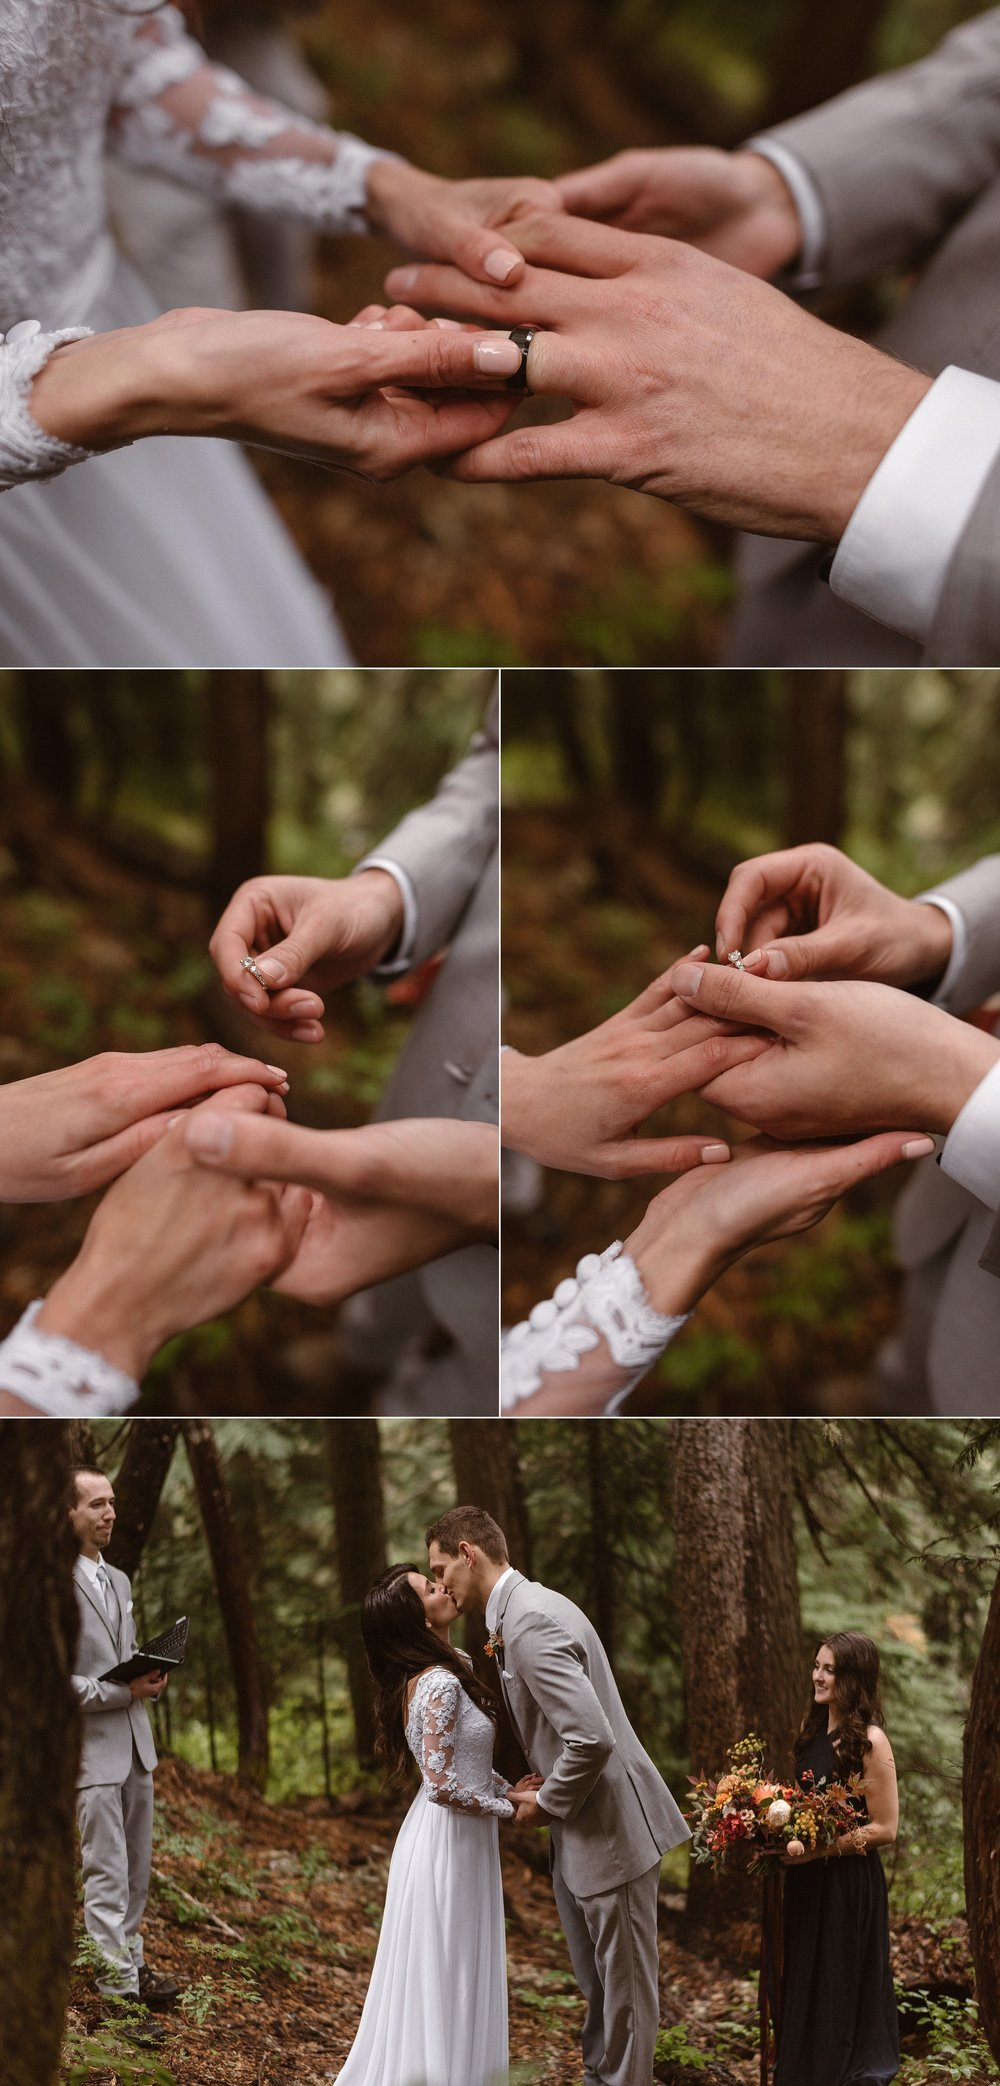 Although their wedding was hardly anything but traditional they exchanged rings after their emotional wedding vows. No wedding - no matter how big or small is complete without a first kiss. This intimate Mount Rainier National Park wedding on a foggy morning was captured by traveling elopement photographer Maddie Mae.